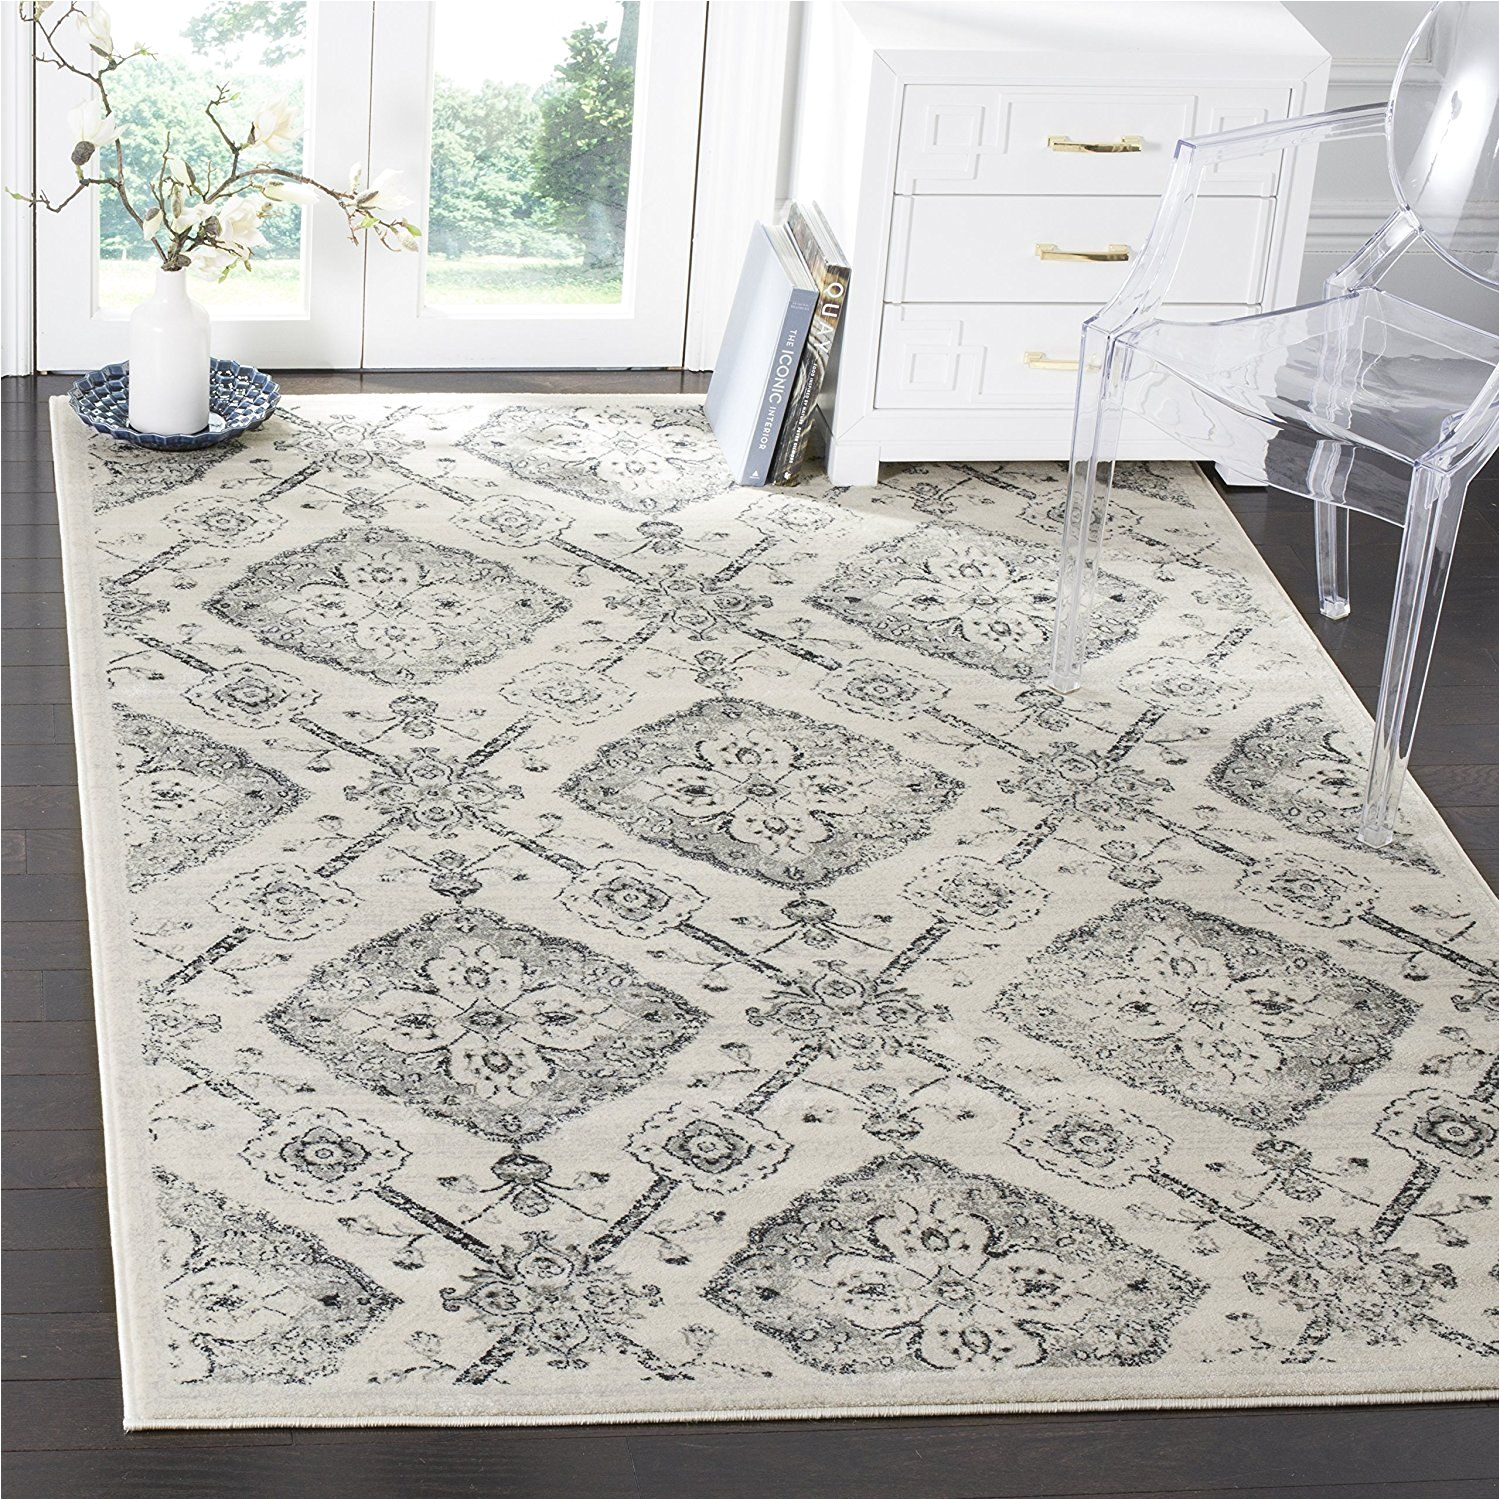 amazon com safavieh carnegie collection cng623c floral medallion diamond trellis cream and light grey area rug 6 7 x 9 2 home kitchen